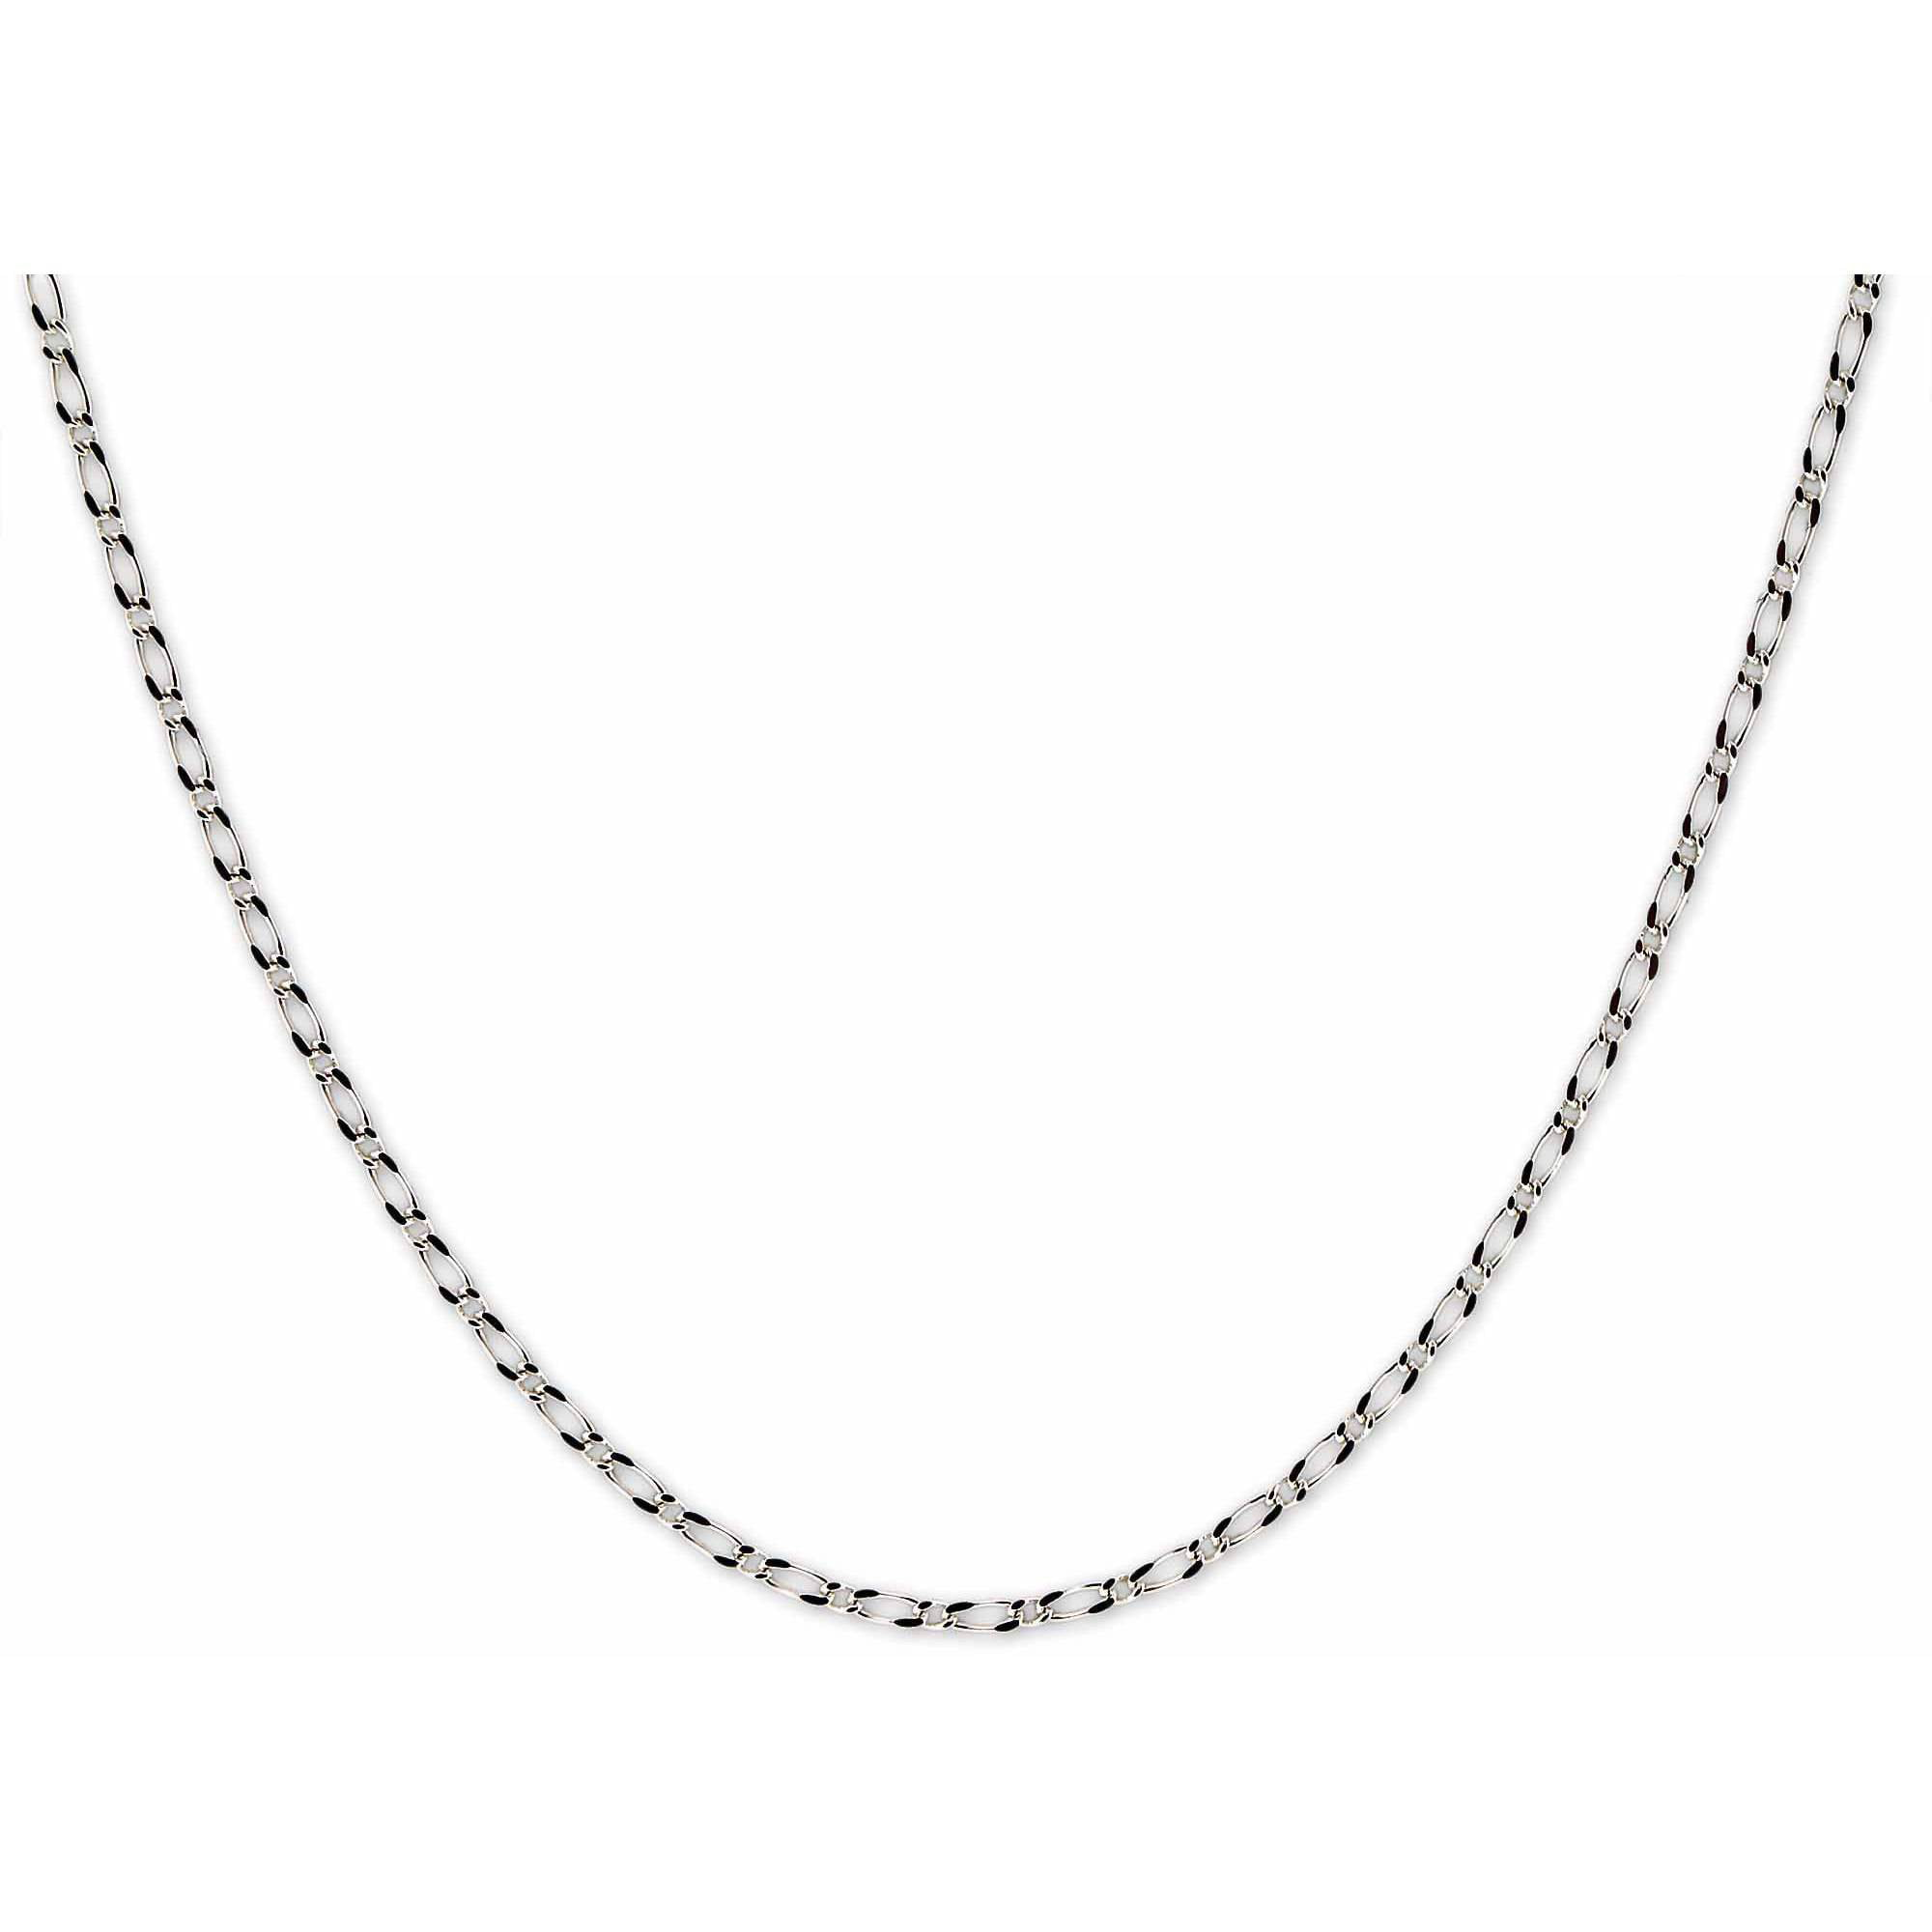 chain products jewellery fullsizeoutput link silver necklace eloise woods the